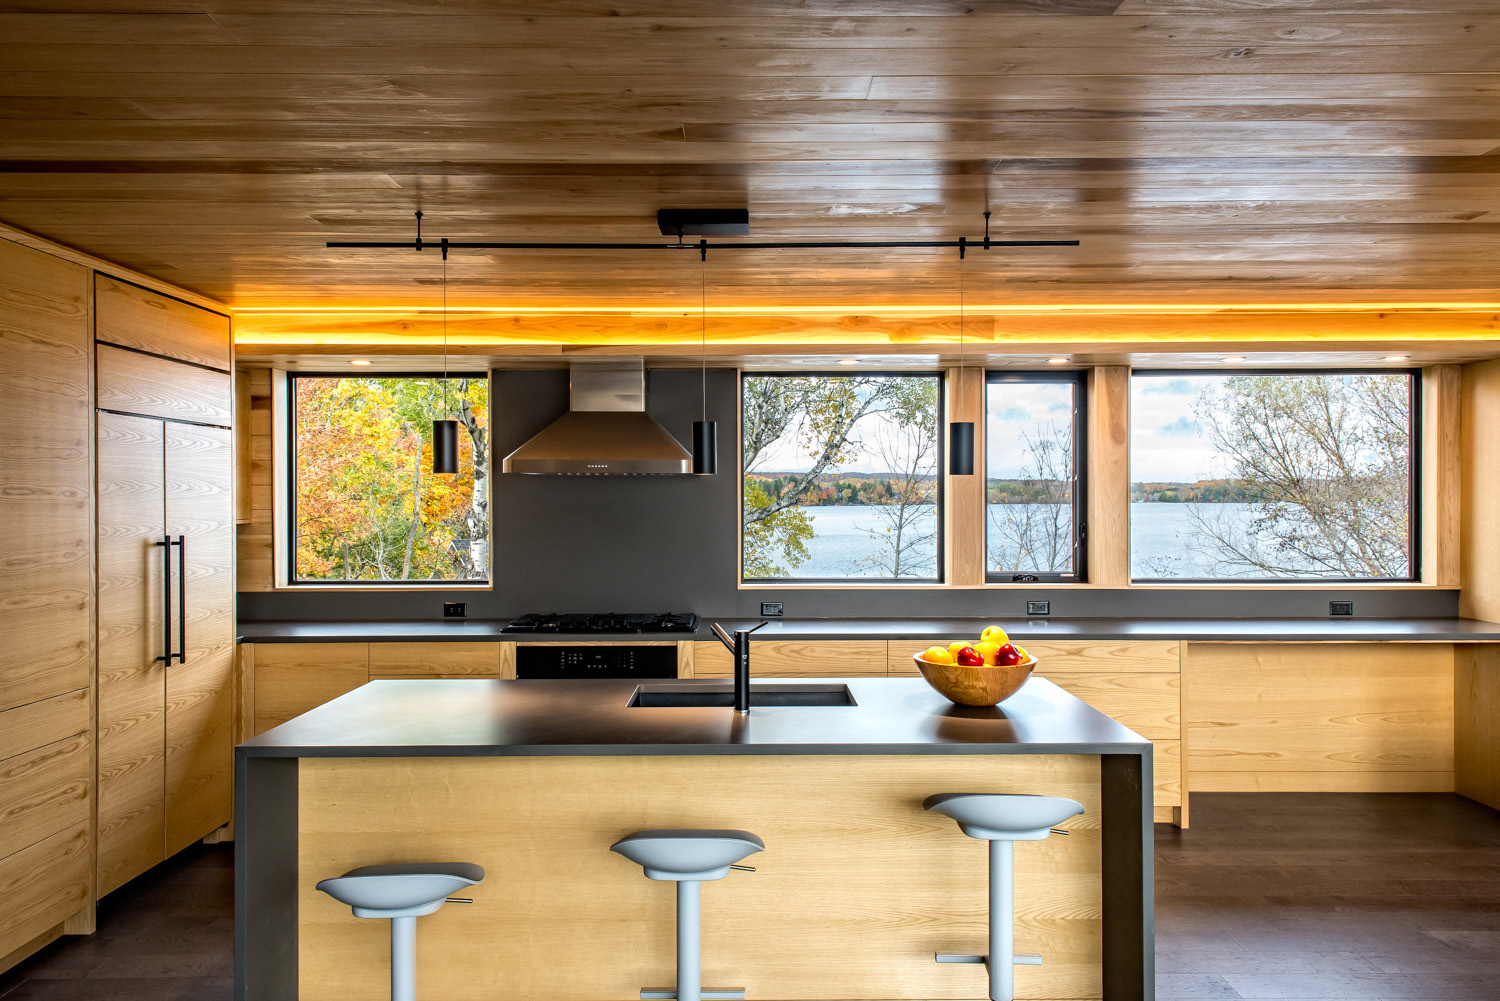 Open Cottage kitchen with dark gray gable end quartz countertops, poplar cabinetry and recessed valance lighting